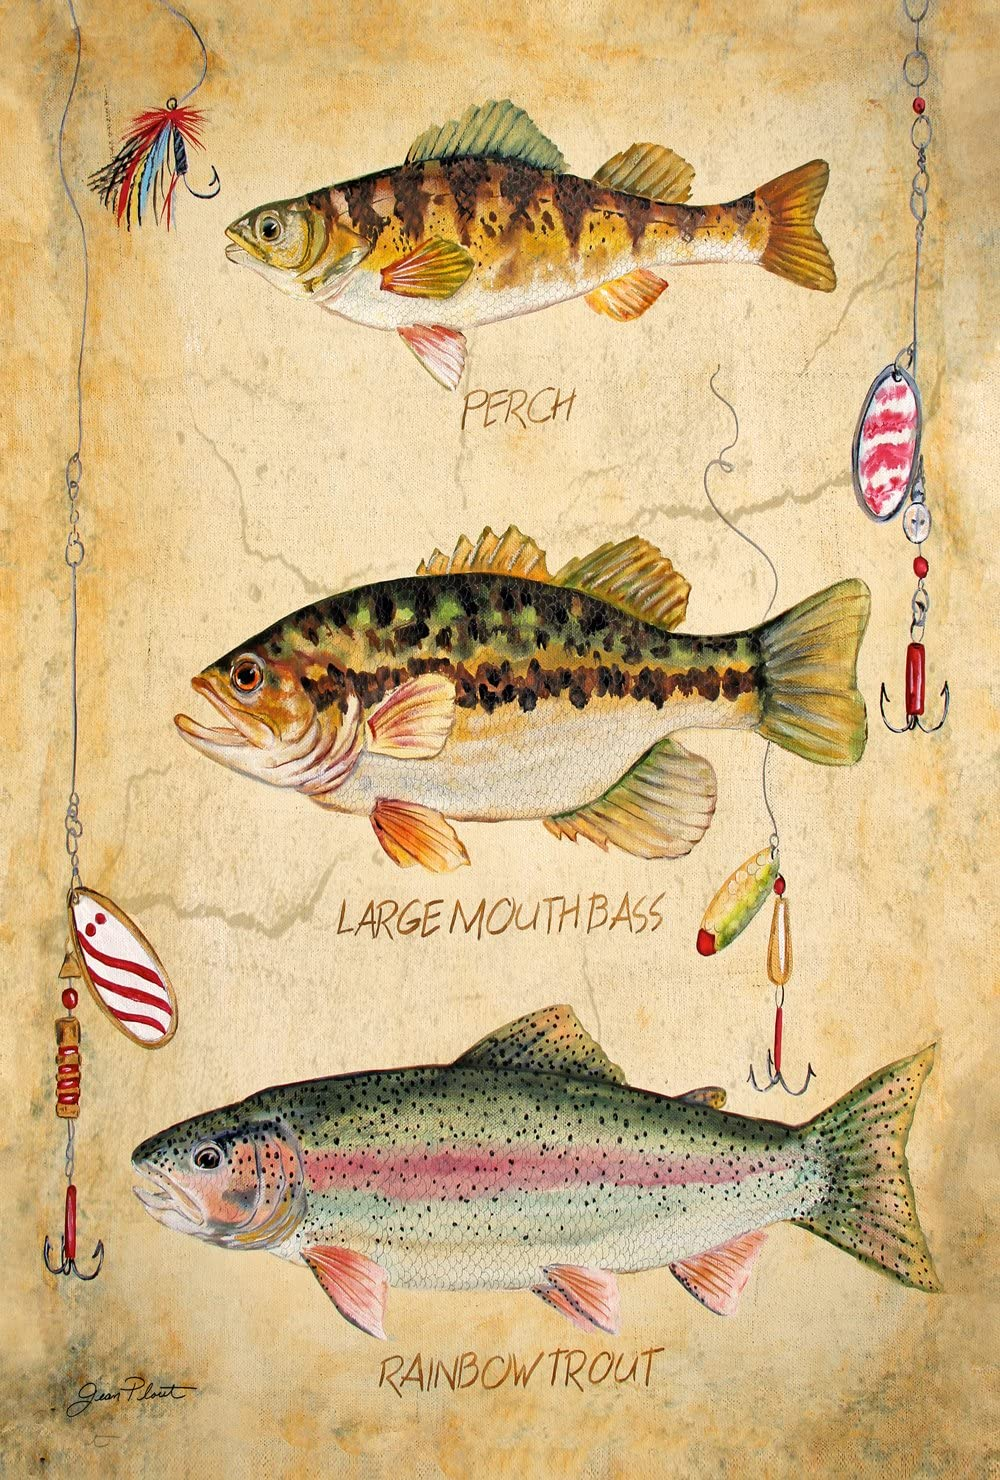 Toland Home Garden Fresh Fish 12.5 x 18 Inch Decorative Sport Fishing Lure Perch Bass Trout Garden Flag